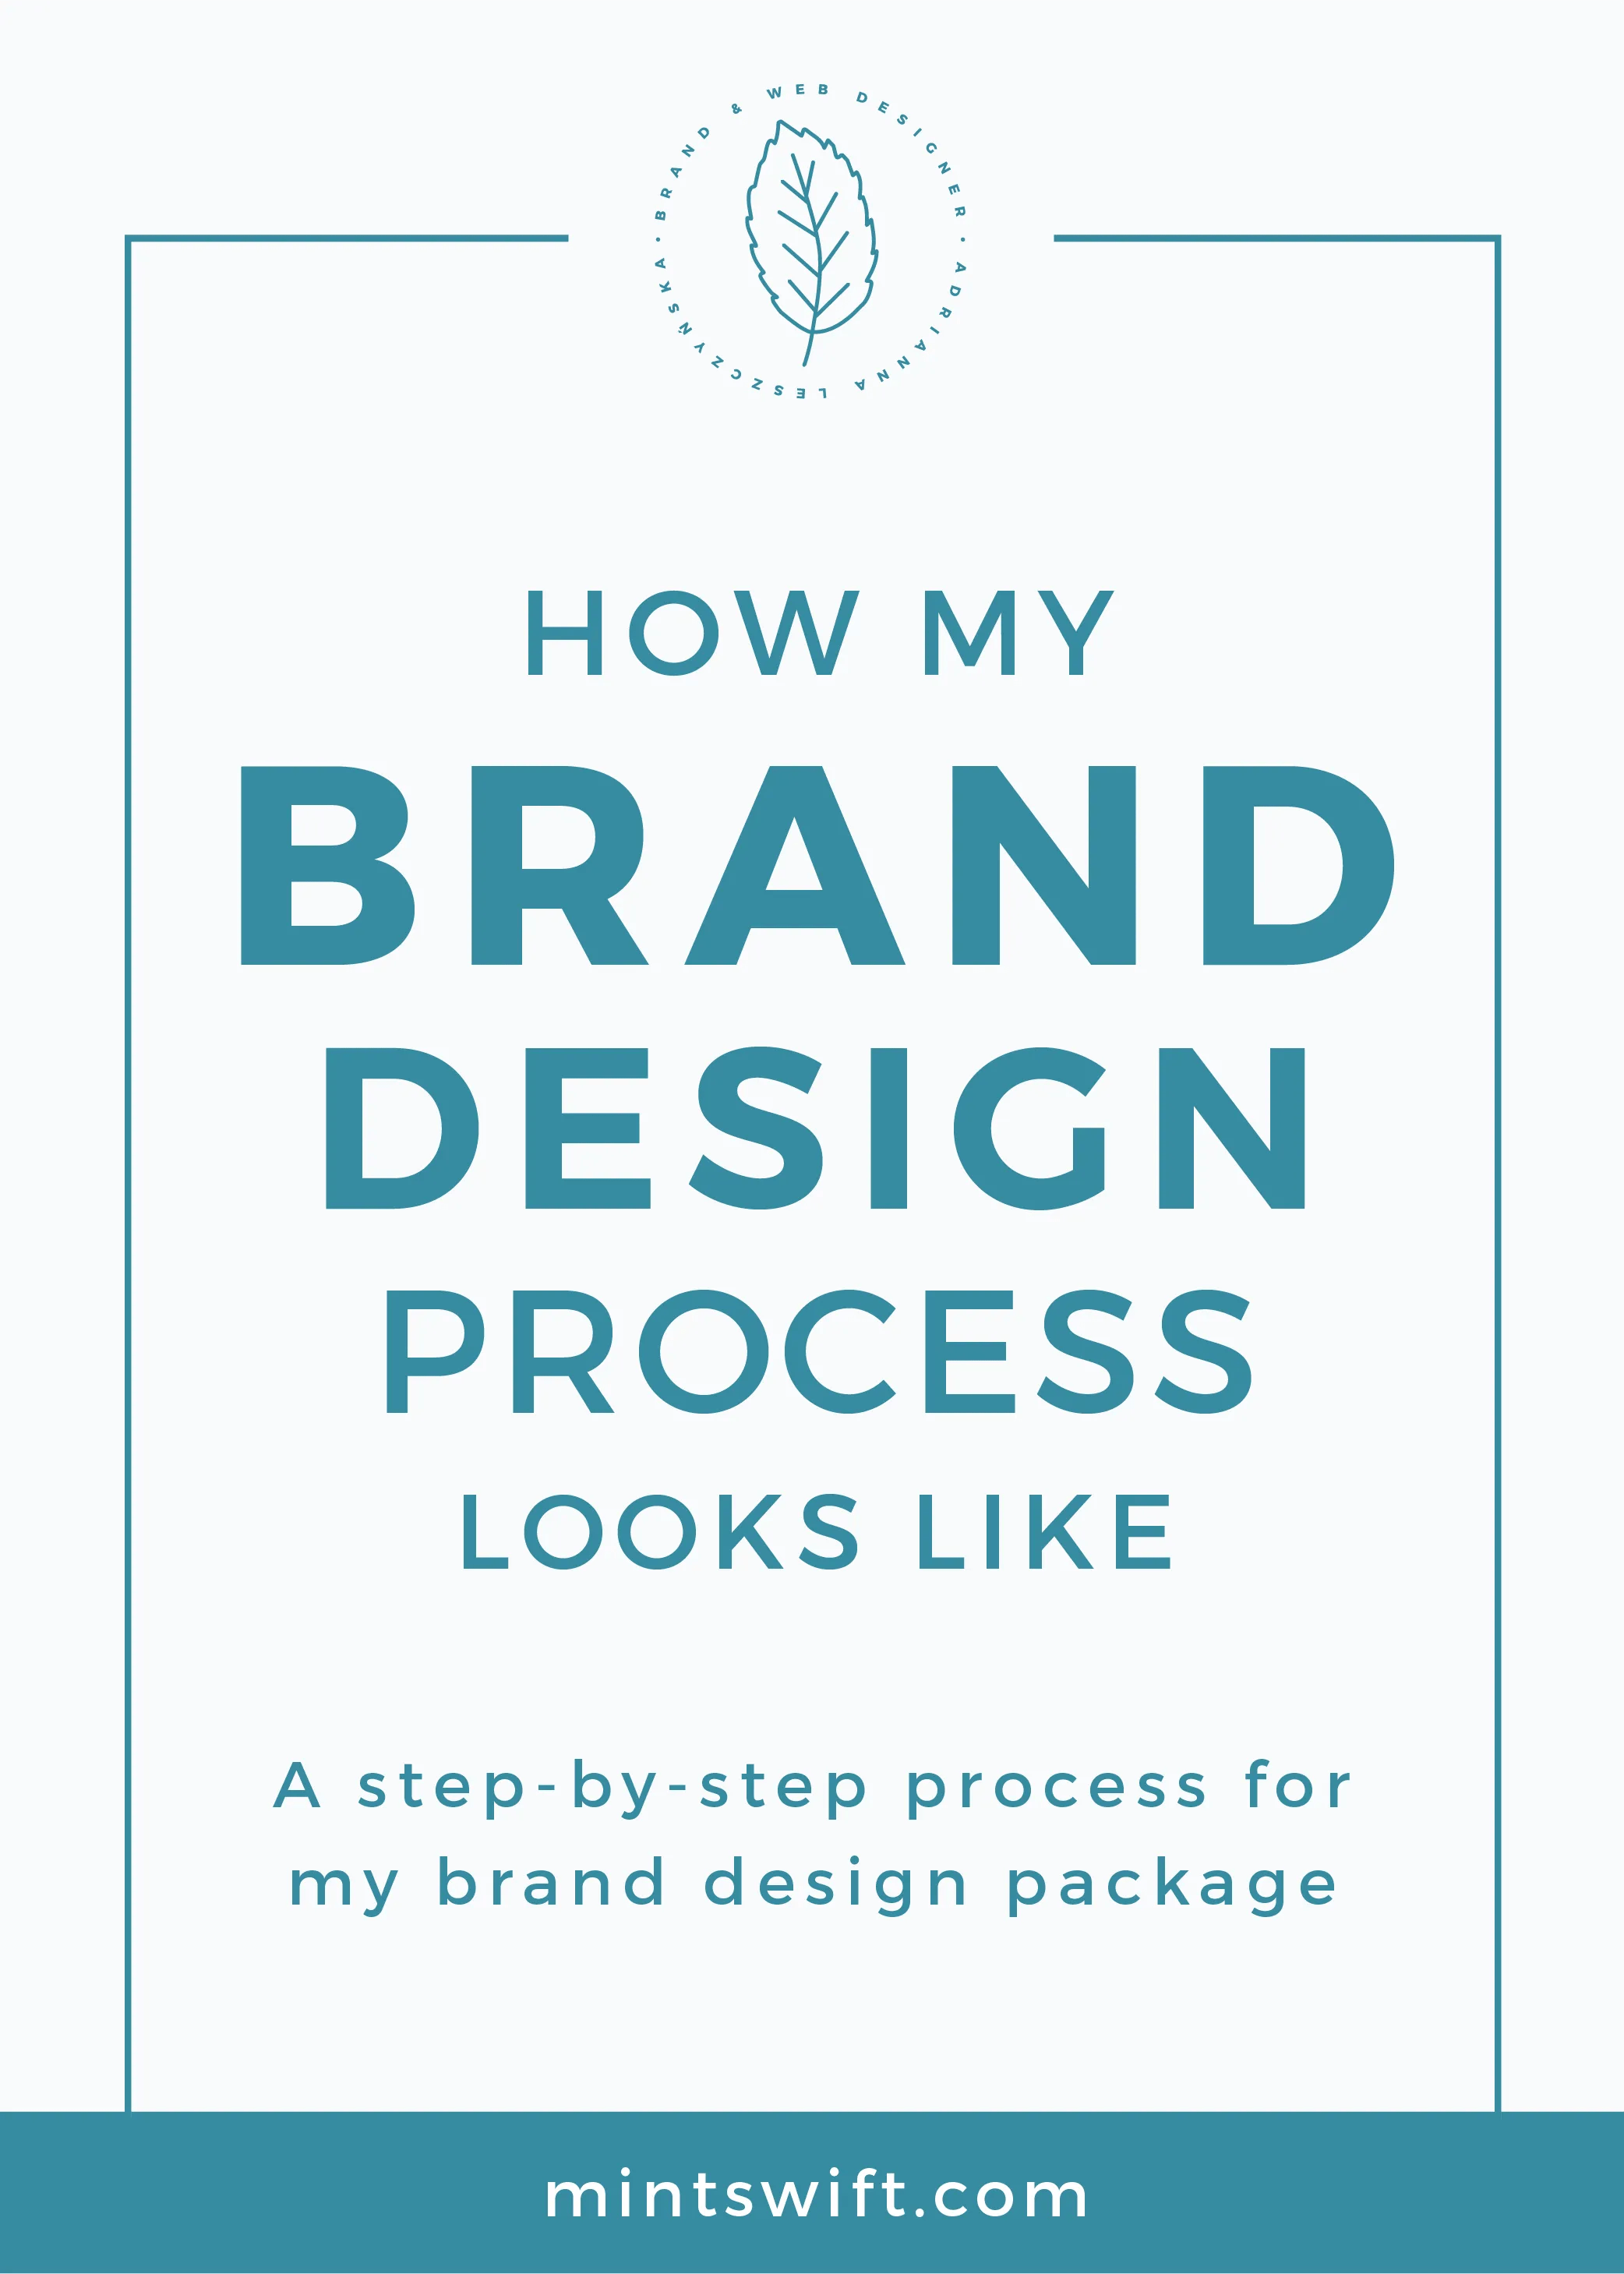 How My Brand Design Process Looks Like. A Step-by-Step Process for My Brand Design Package MintSwift